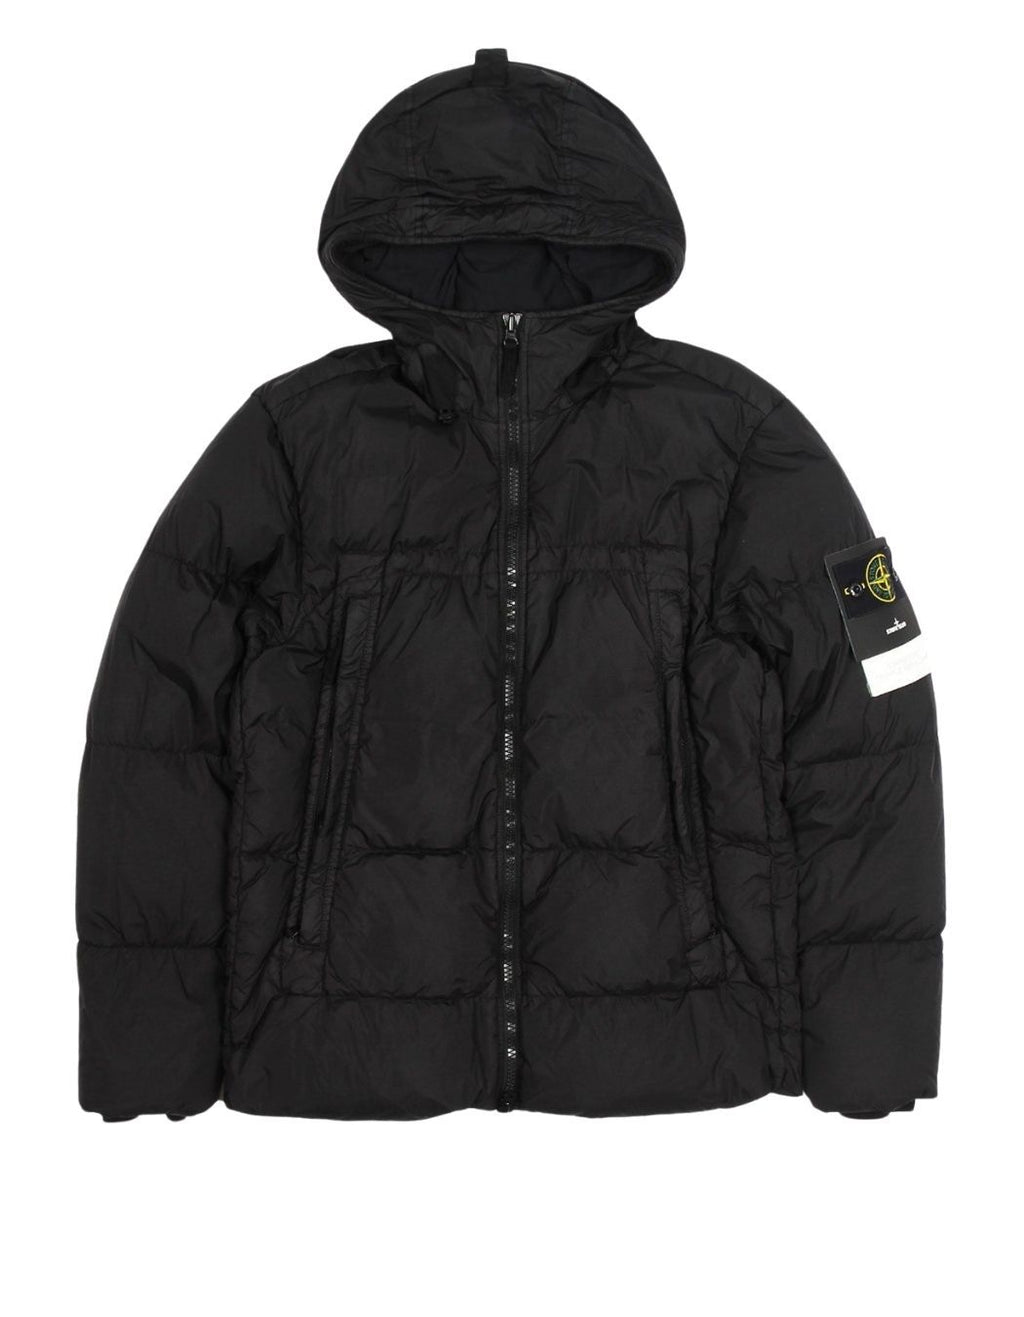 Black Garment Dyed Crinkle Reps NY Down Jacket